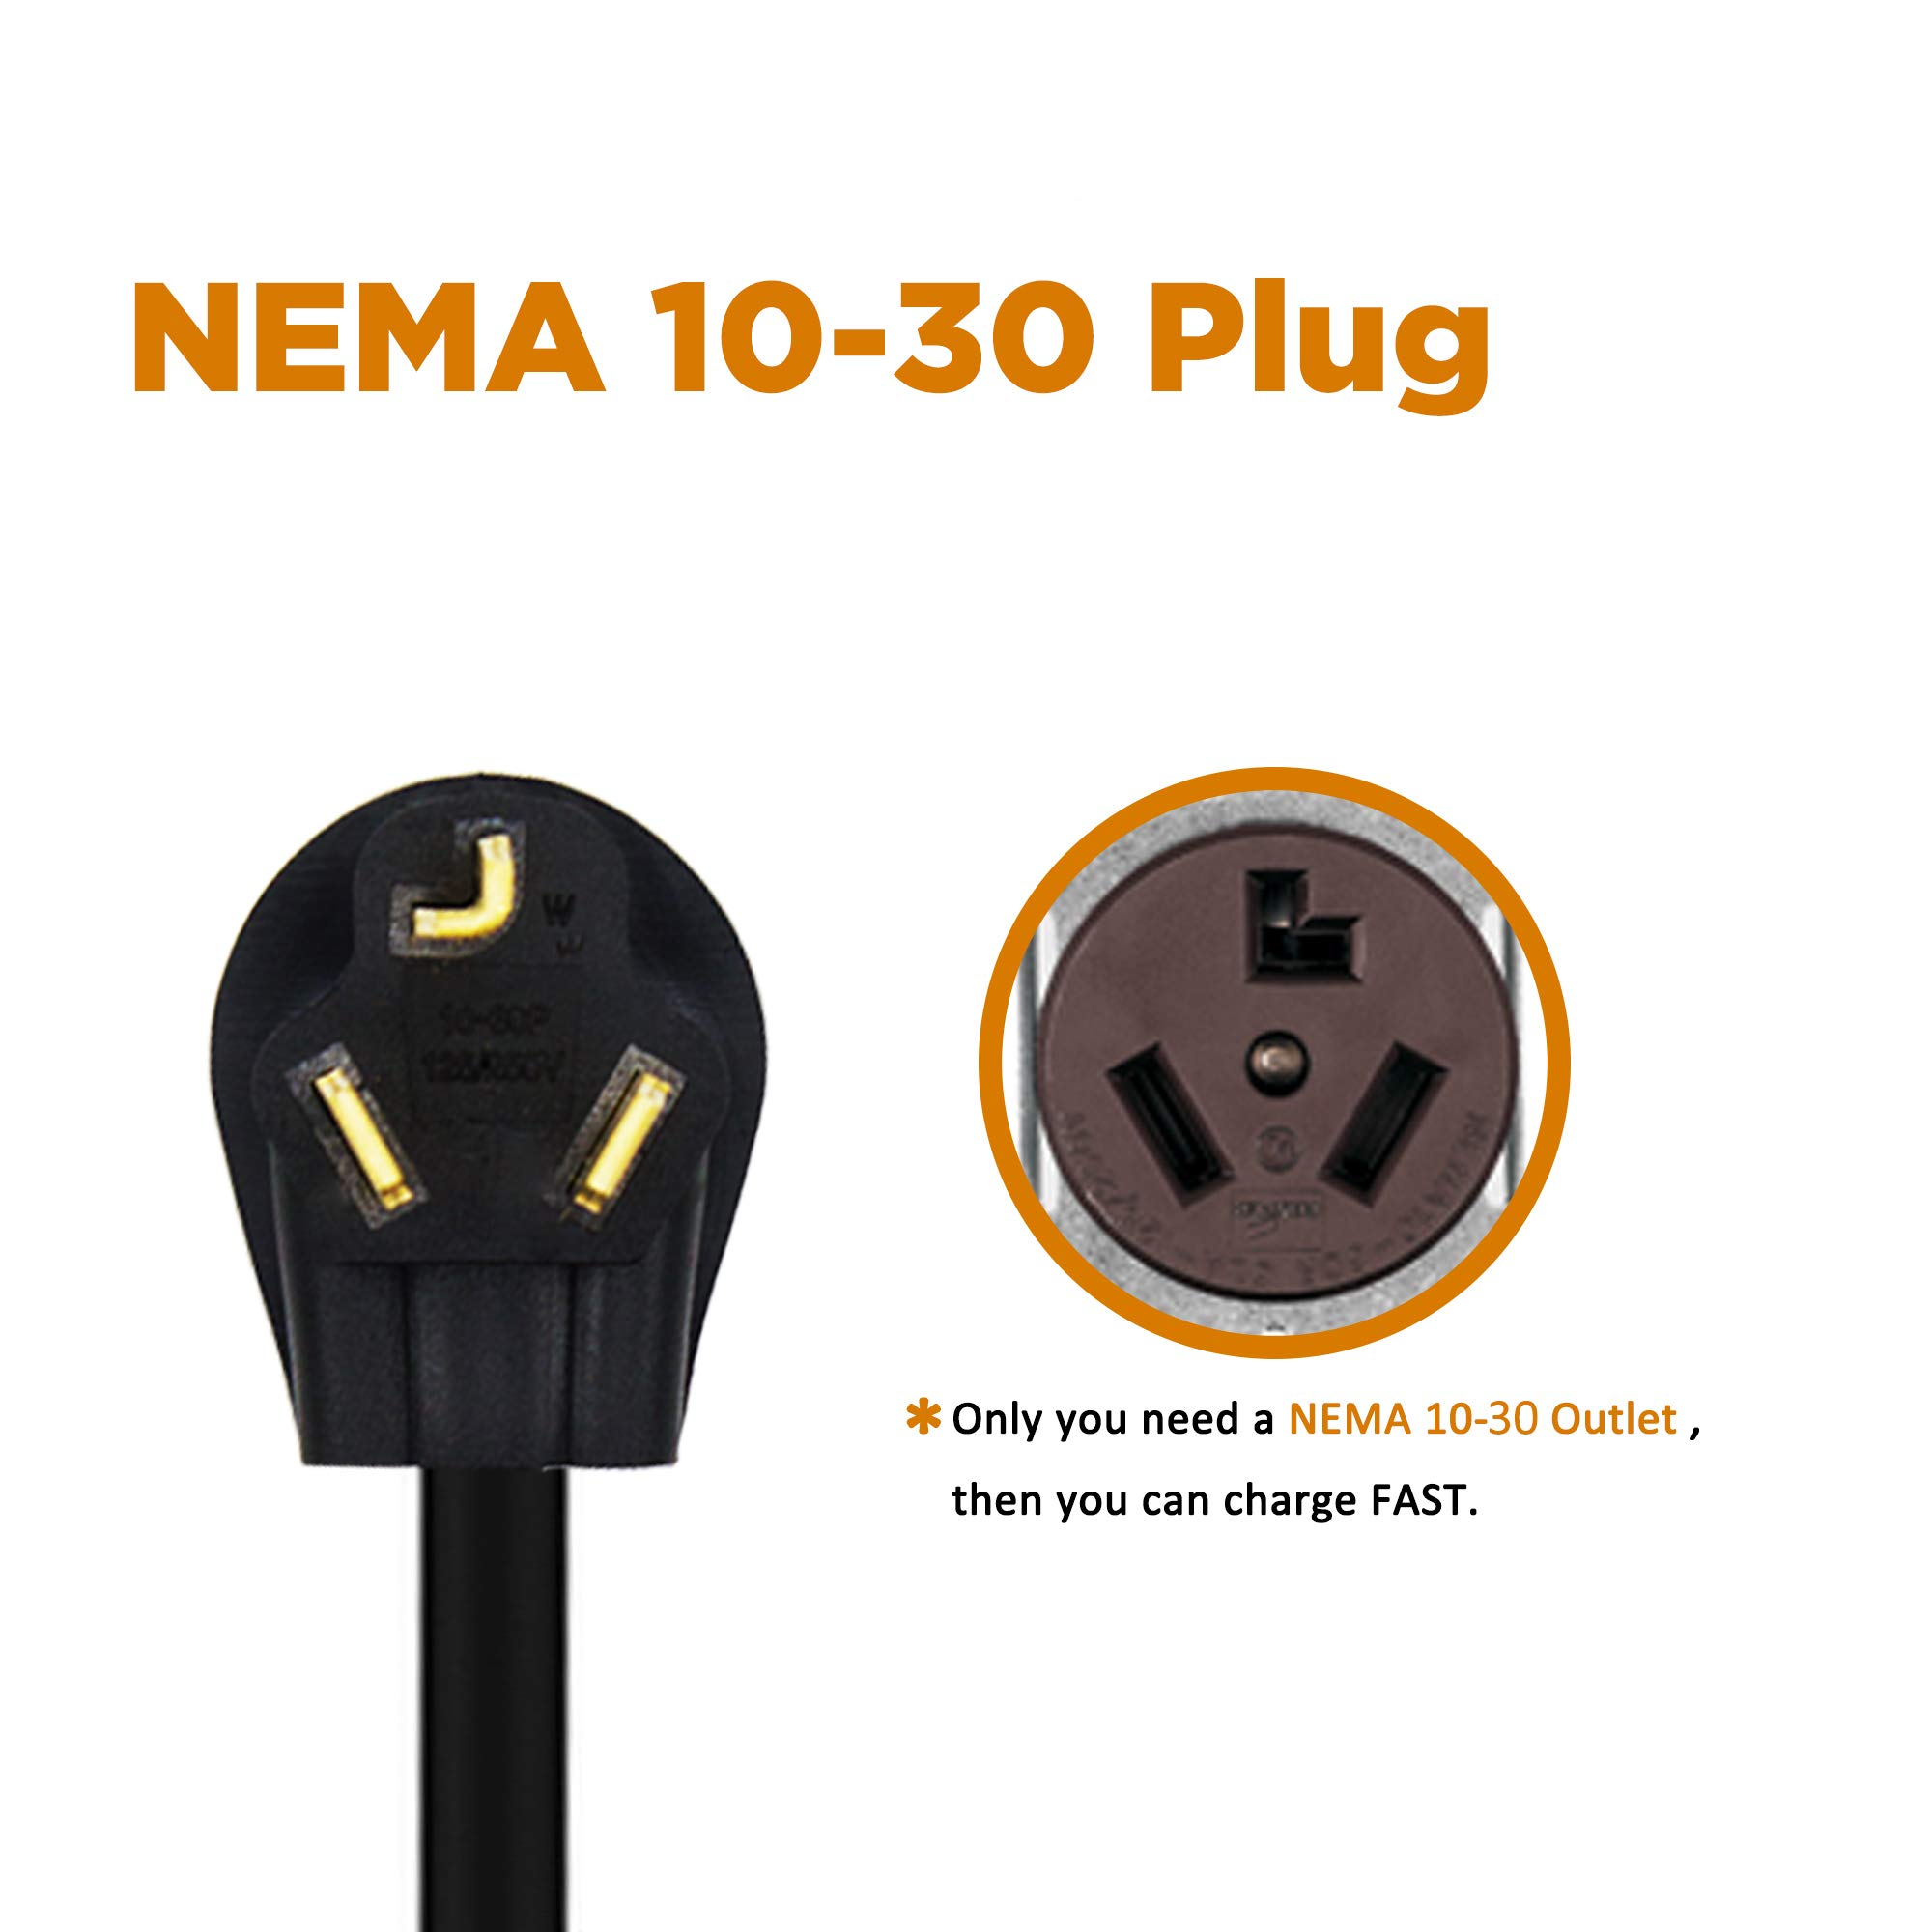 MUSTART Level 2 Portable EV Charger (240 Volt, 25ft Cable, 26 Amp), Electric Vehicle Charger Plug-in EV Charging Station with NEMA 10-30P by MUSTART (Image #4)